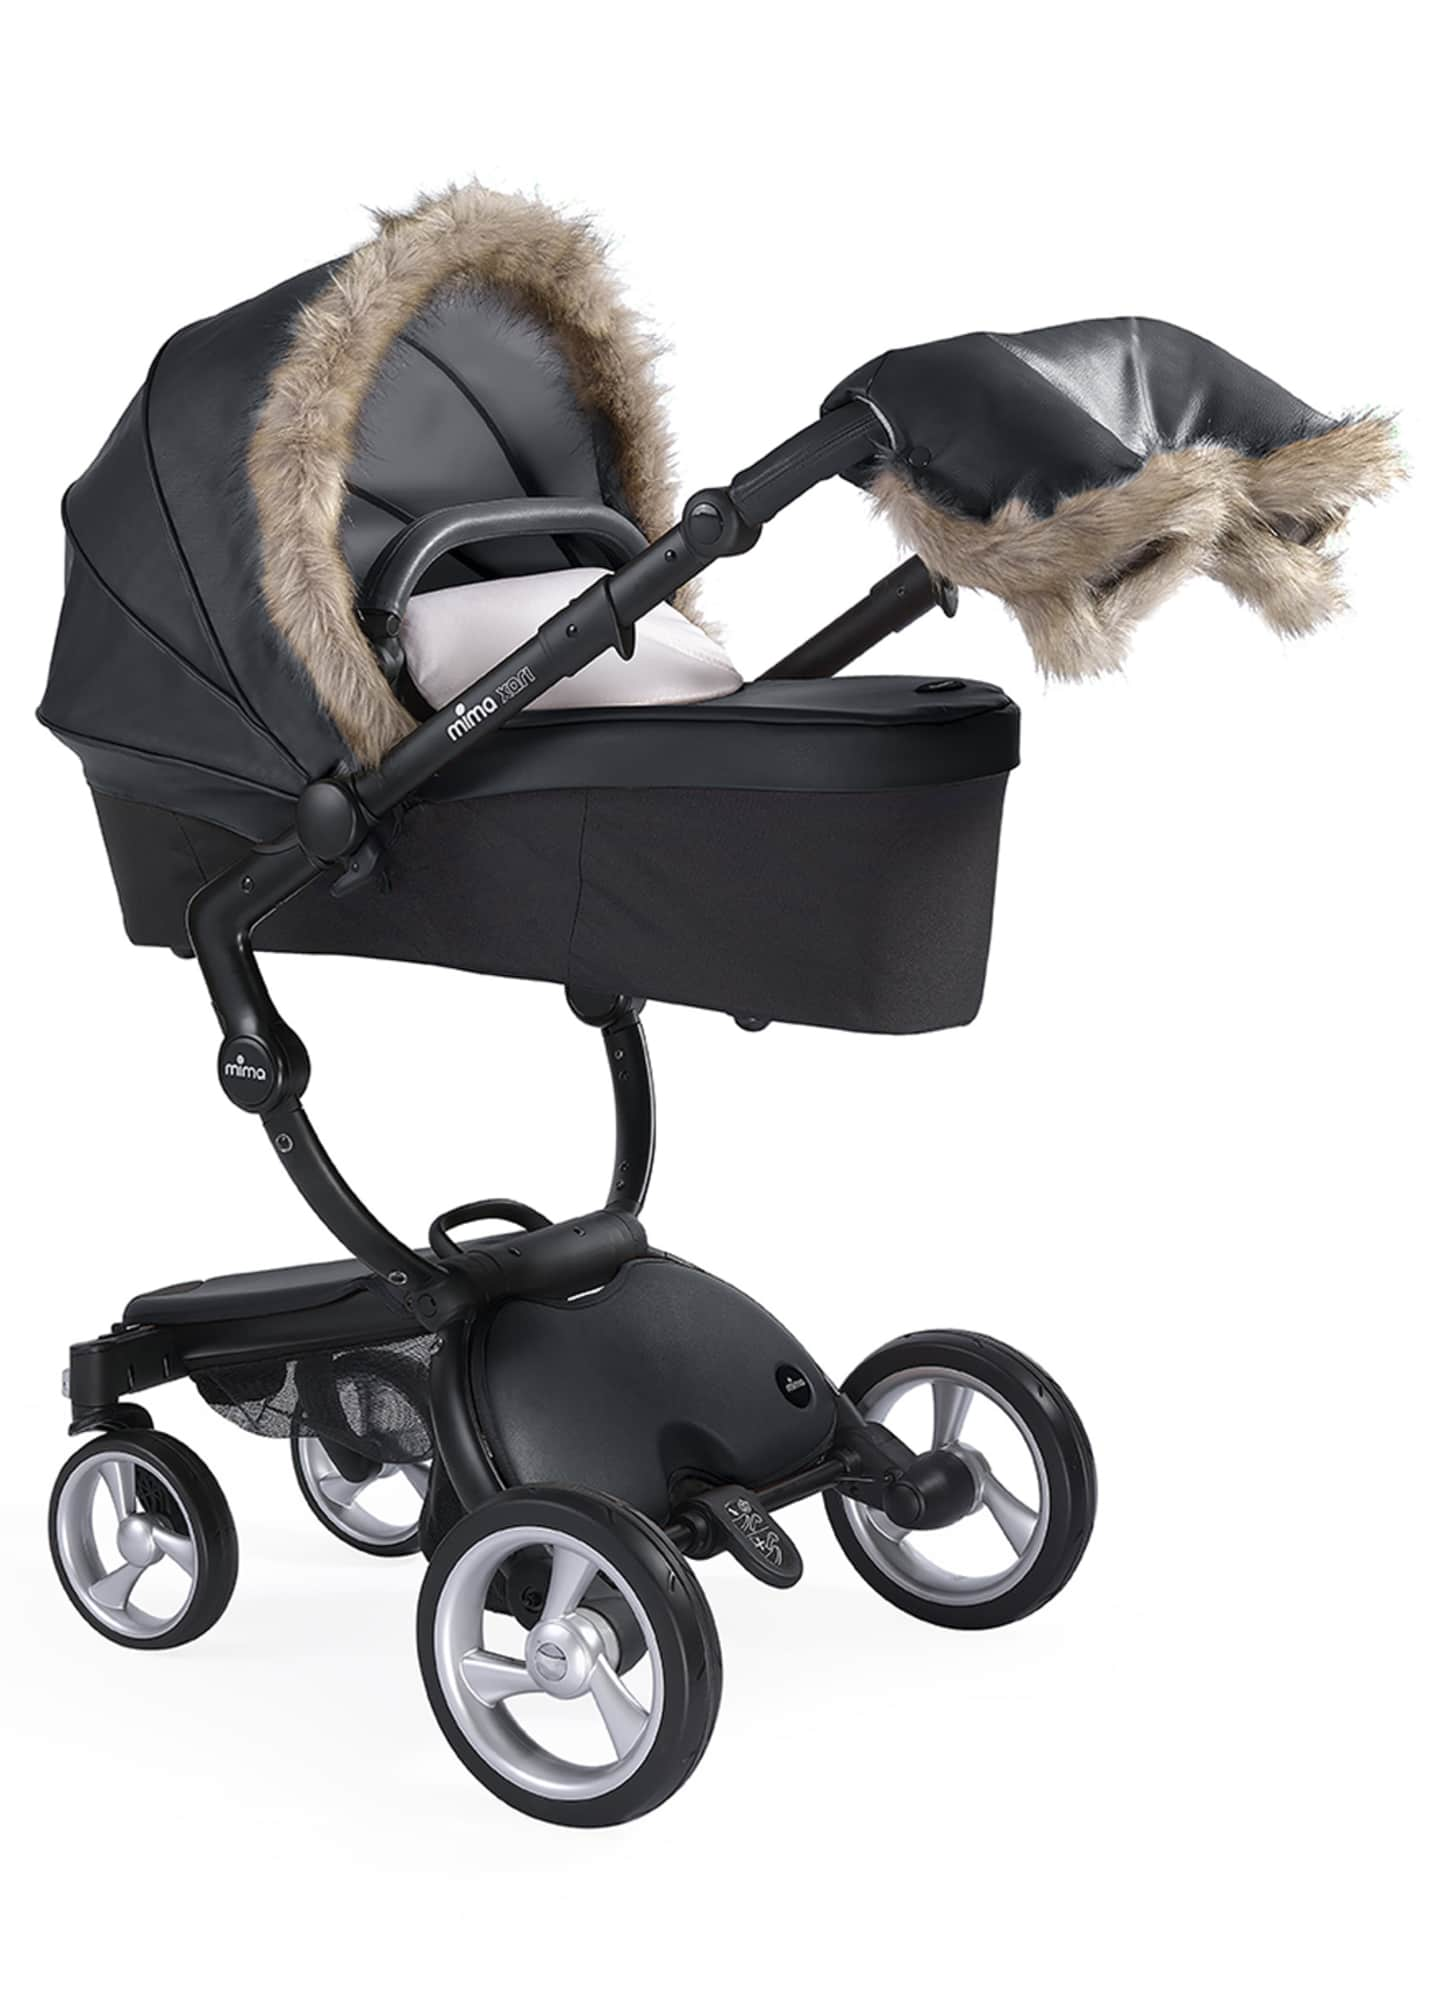 Image 2 of 2: Winter Outfit for Mima Stroller